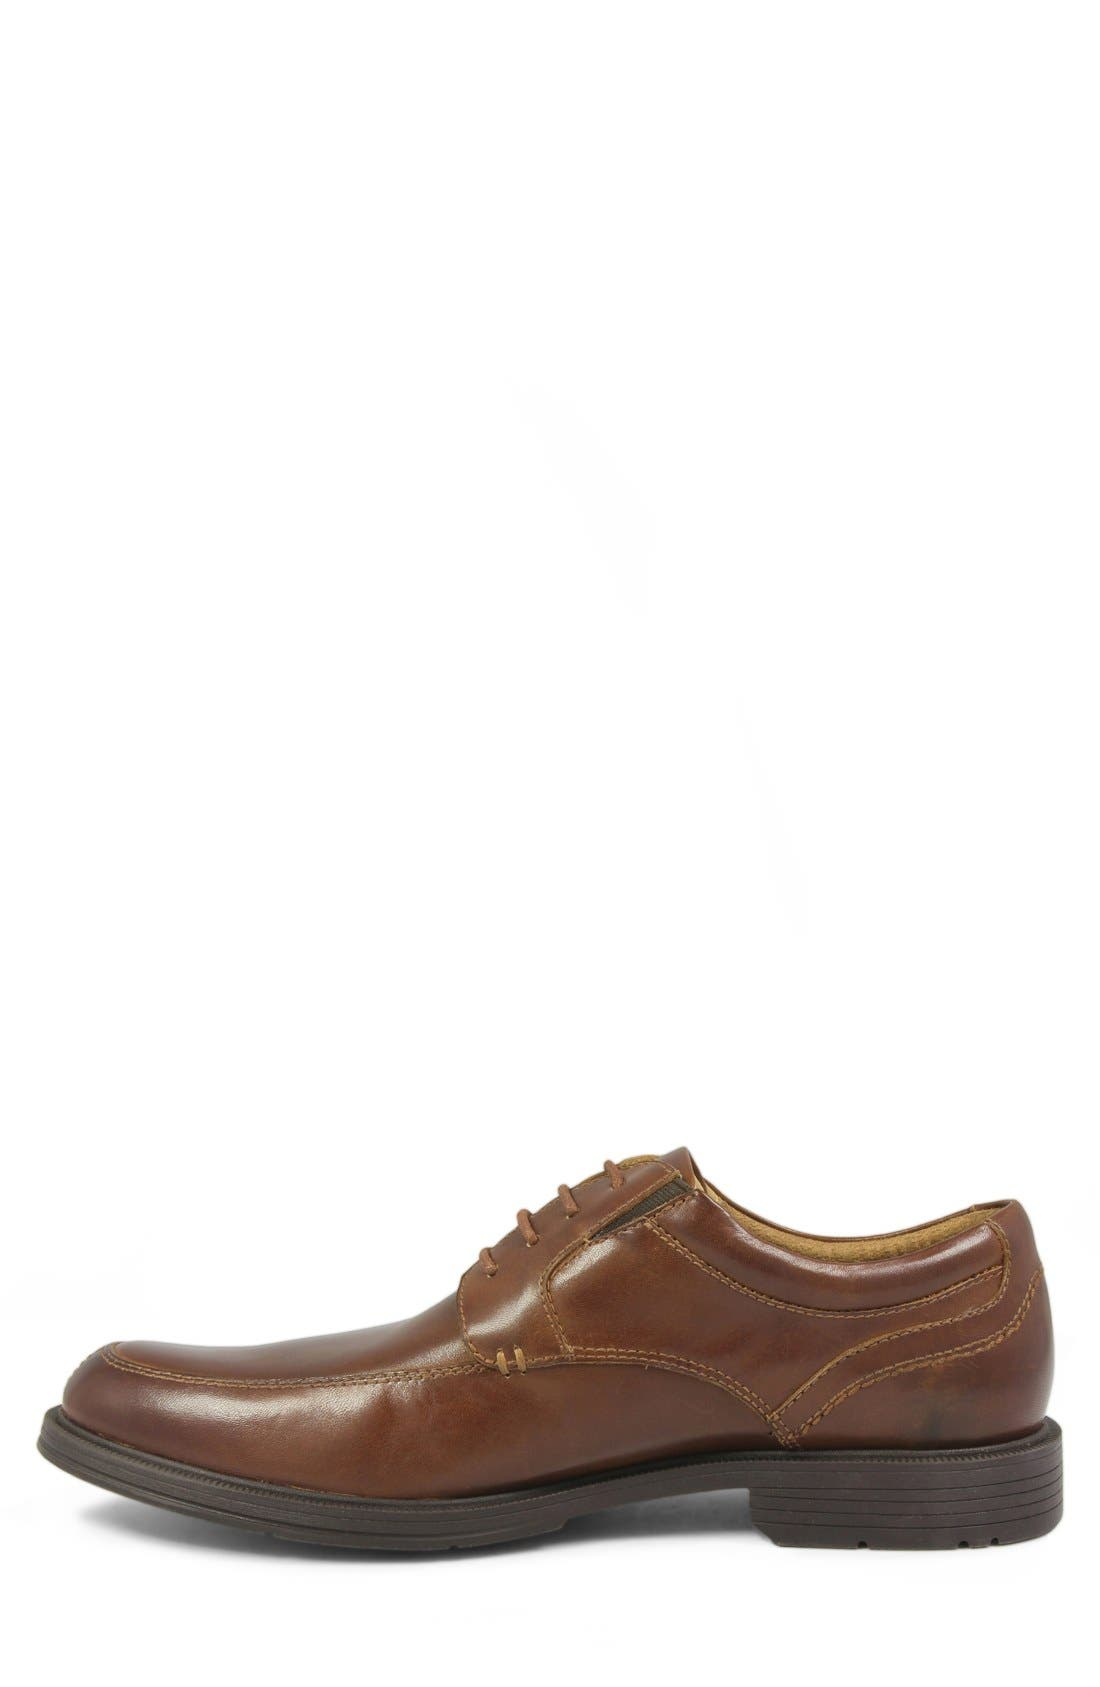 'Mogul' Split Toe Derby,                             Alternate thumbnail 2, color,                             Medium Brown